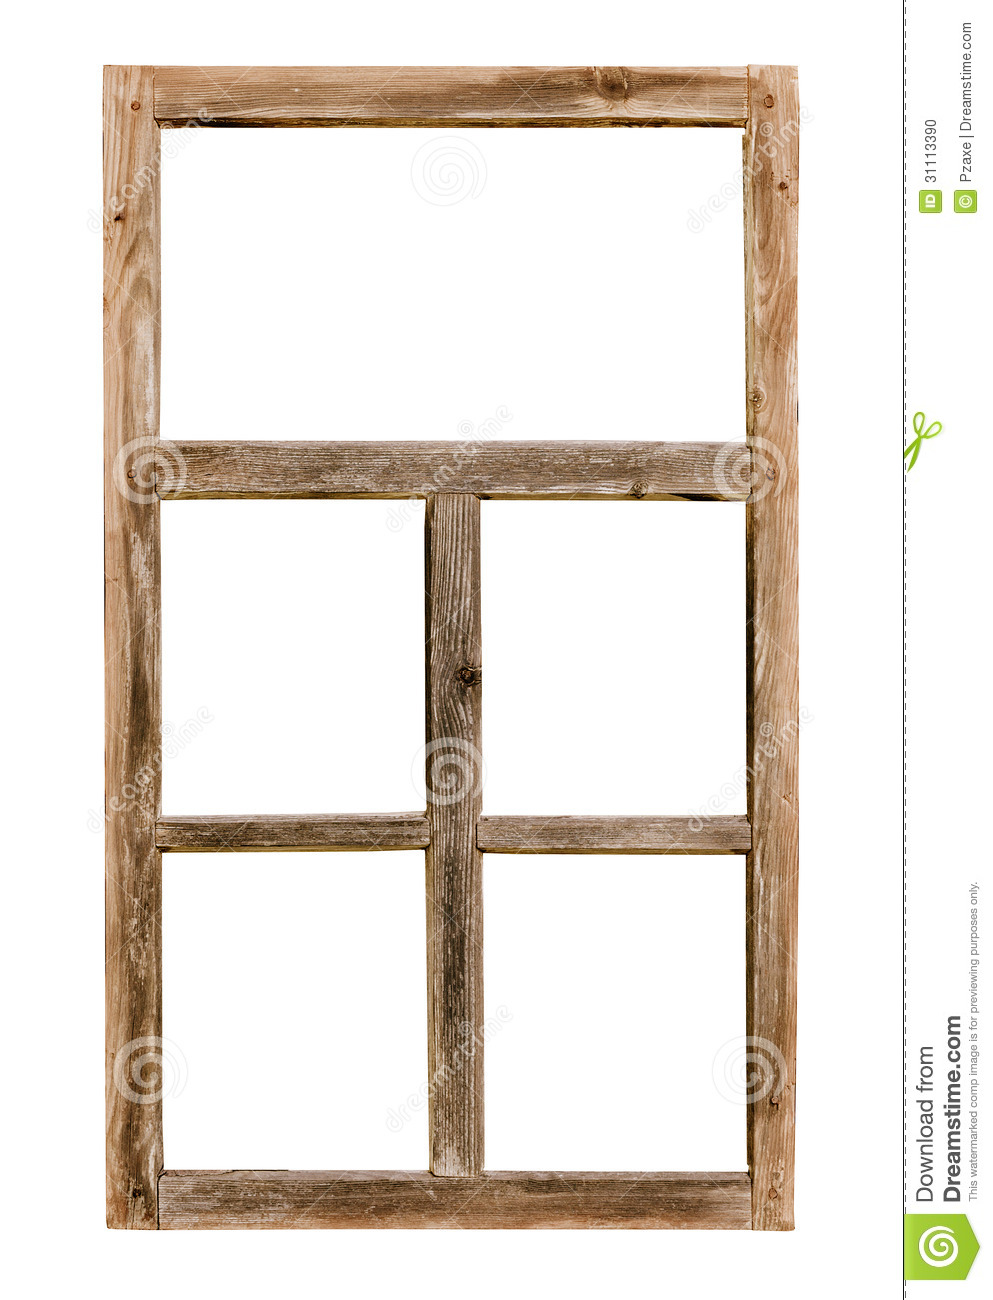 Vintage simple wooden window frame isolated on white stock for Cadre de fenetre en bois